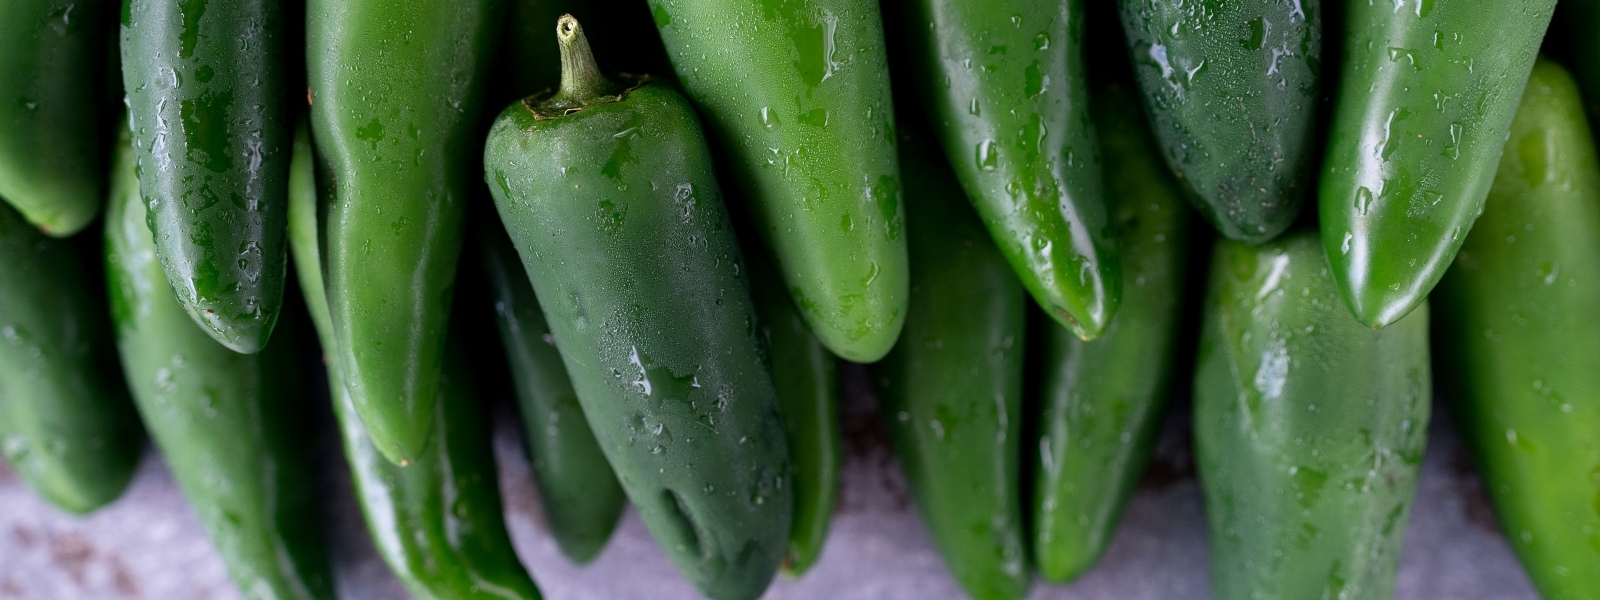 Close up photo of jalapeno peppers grown at the Texas A&M Gardens in College Station, Tx.